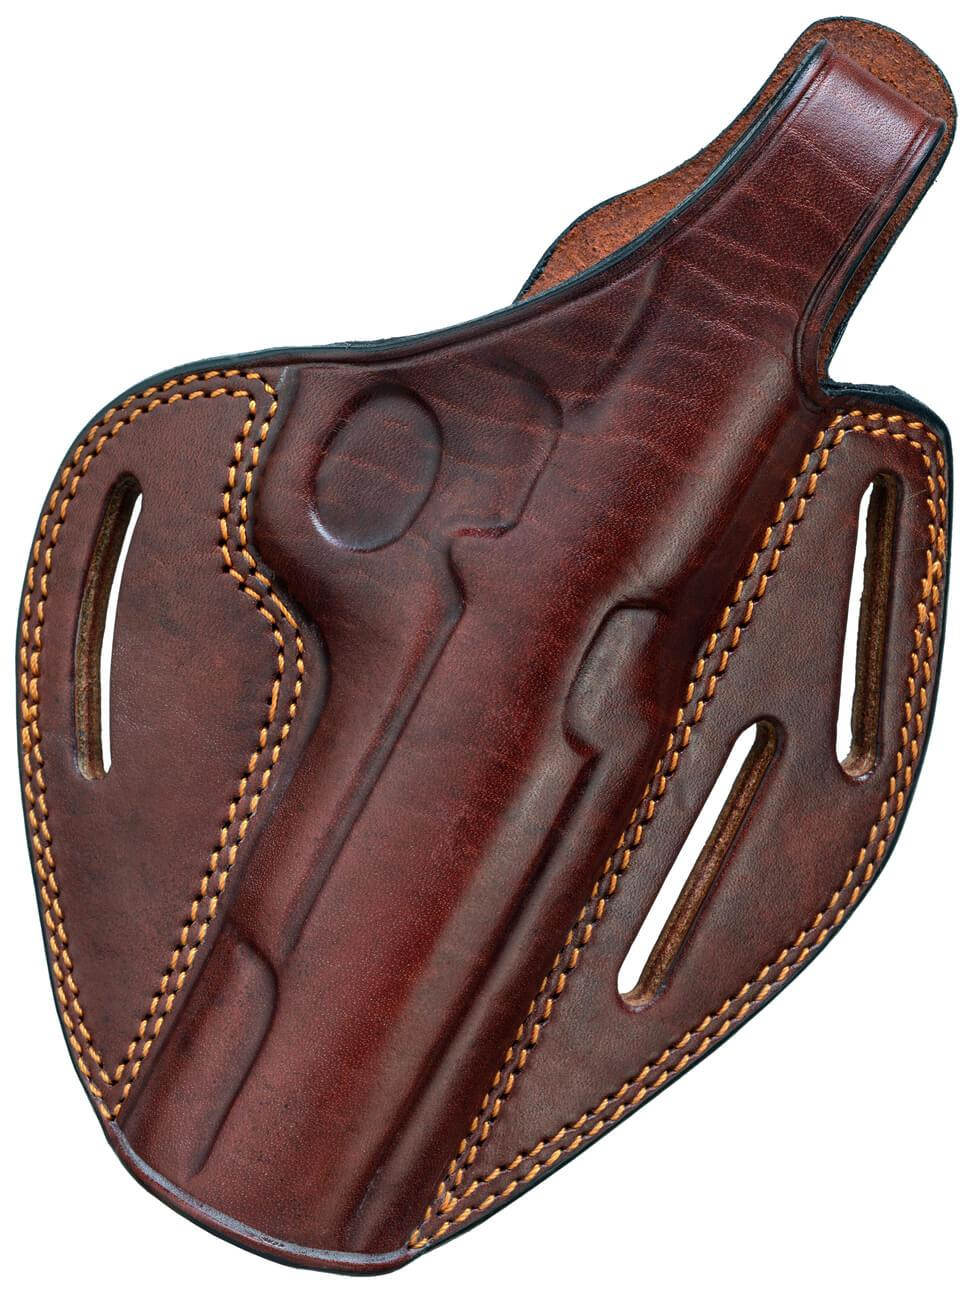 """Holster cuir """"TB Casual Gen 2″ KIRO pour pistolets SIG PRO 2022"""